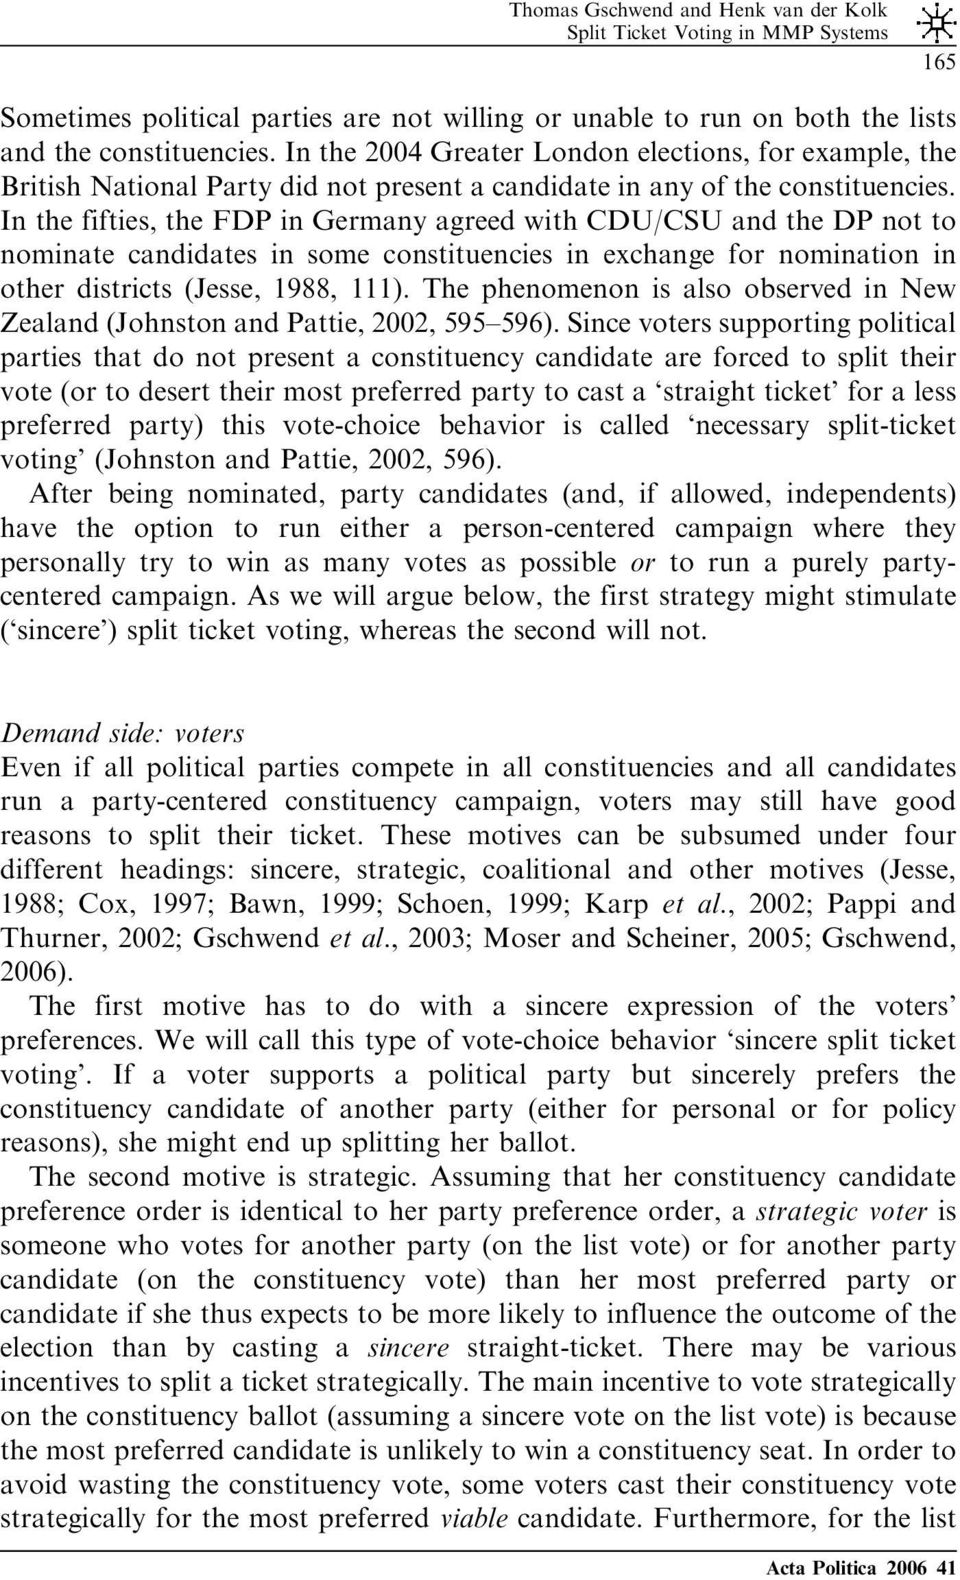 In the fifties, the FDP in Germany agreed with CDU/CSU and the DP not to nominate candidates in some constituencies in exchange for nomination in other districts (Jesse, 1988, 111).